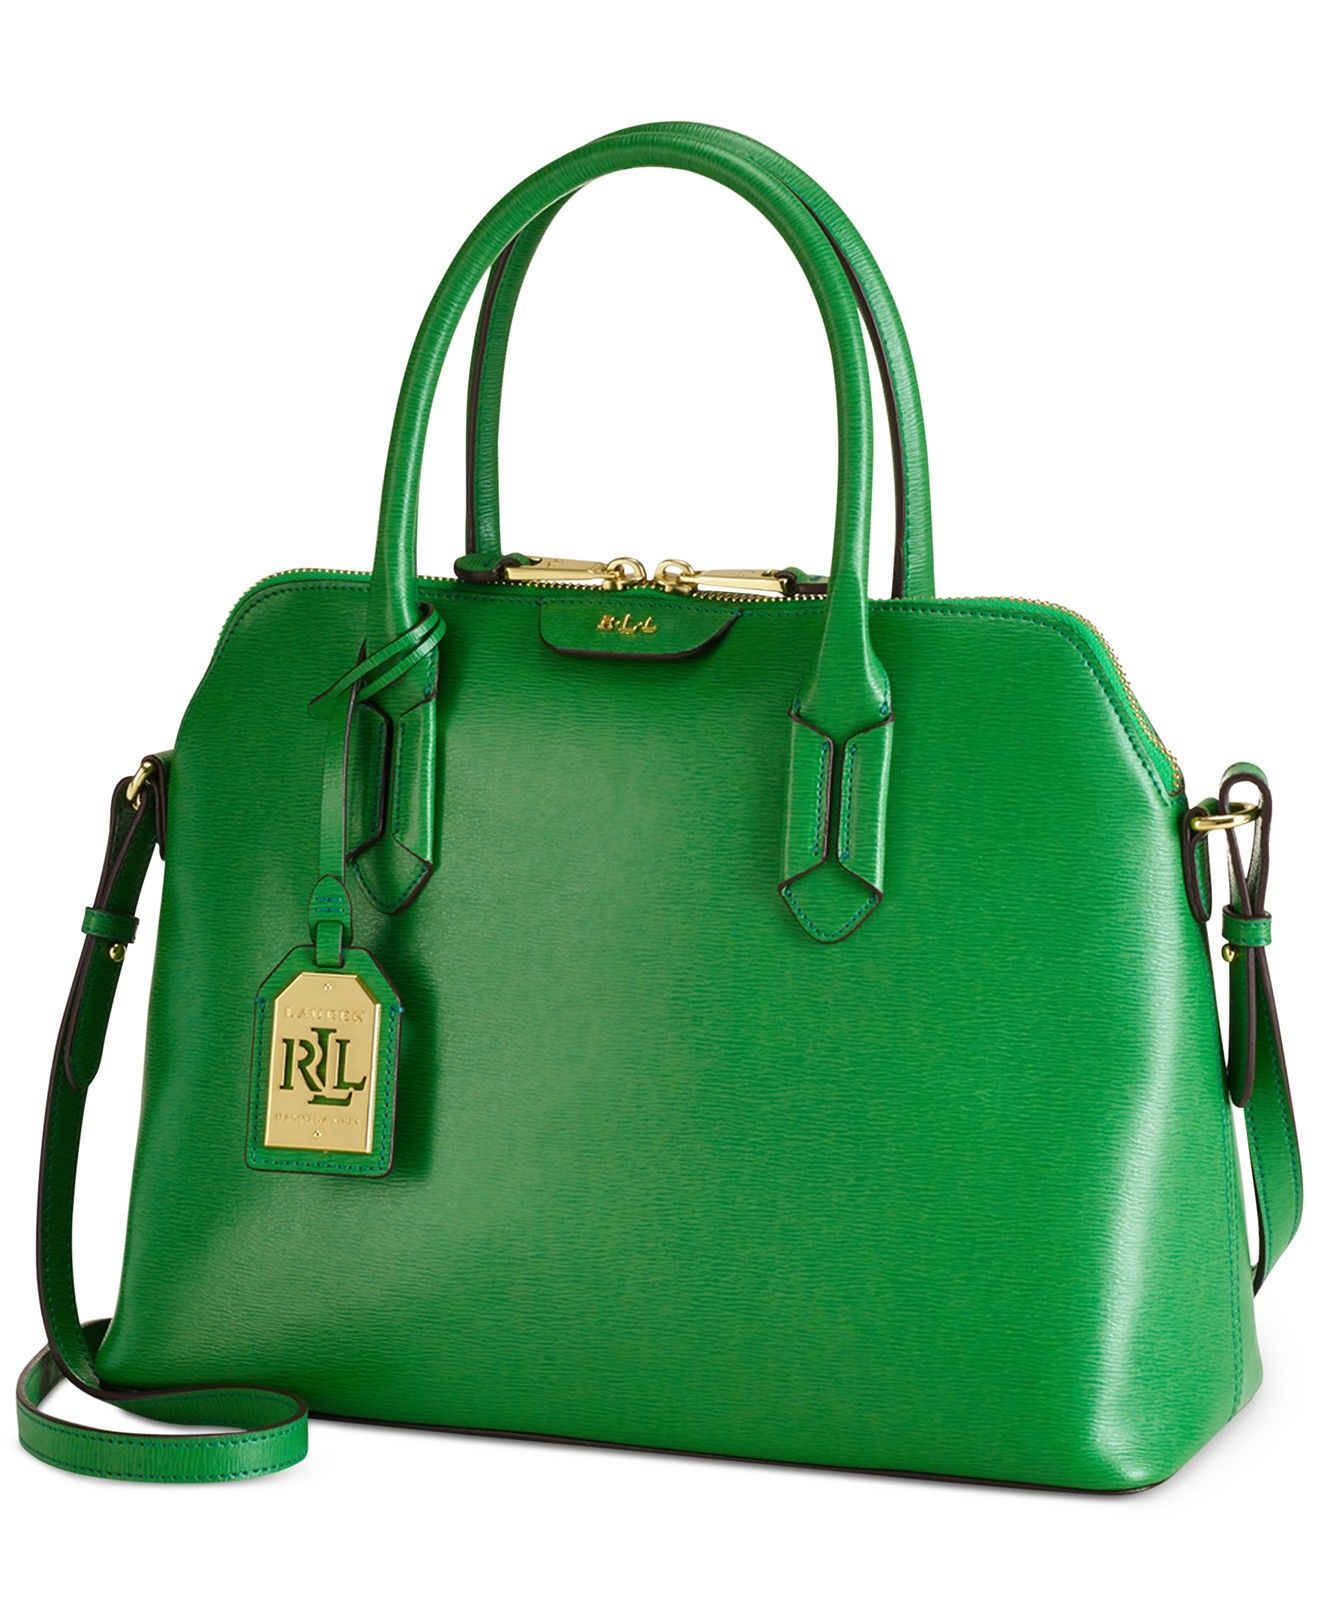 Lauren Ralph Tate Dome Satchel